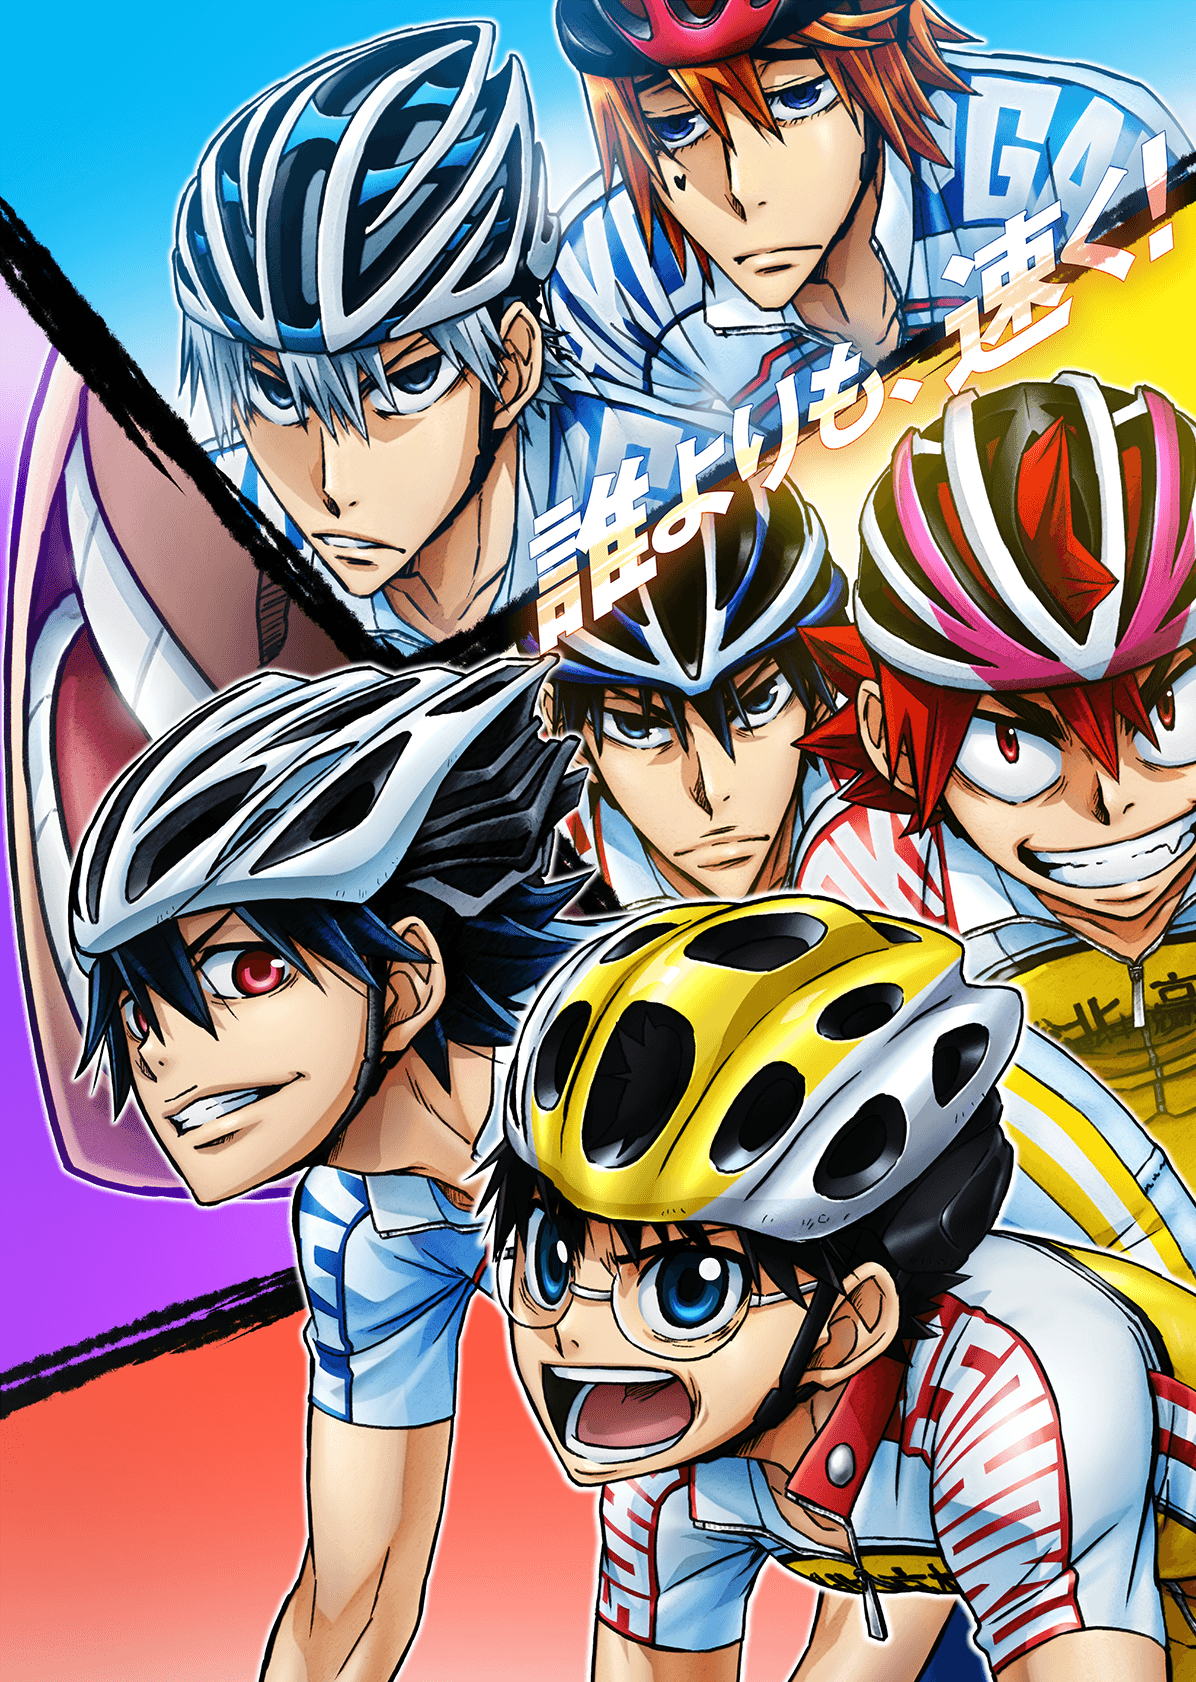 Yawamushi Pedal Glory Line premieres on January 8, 2018